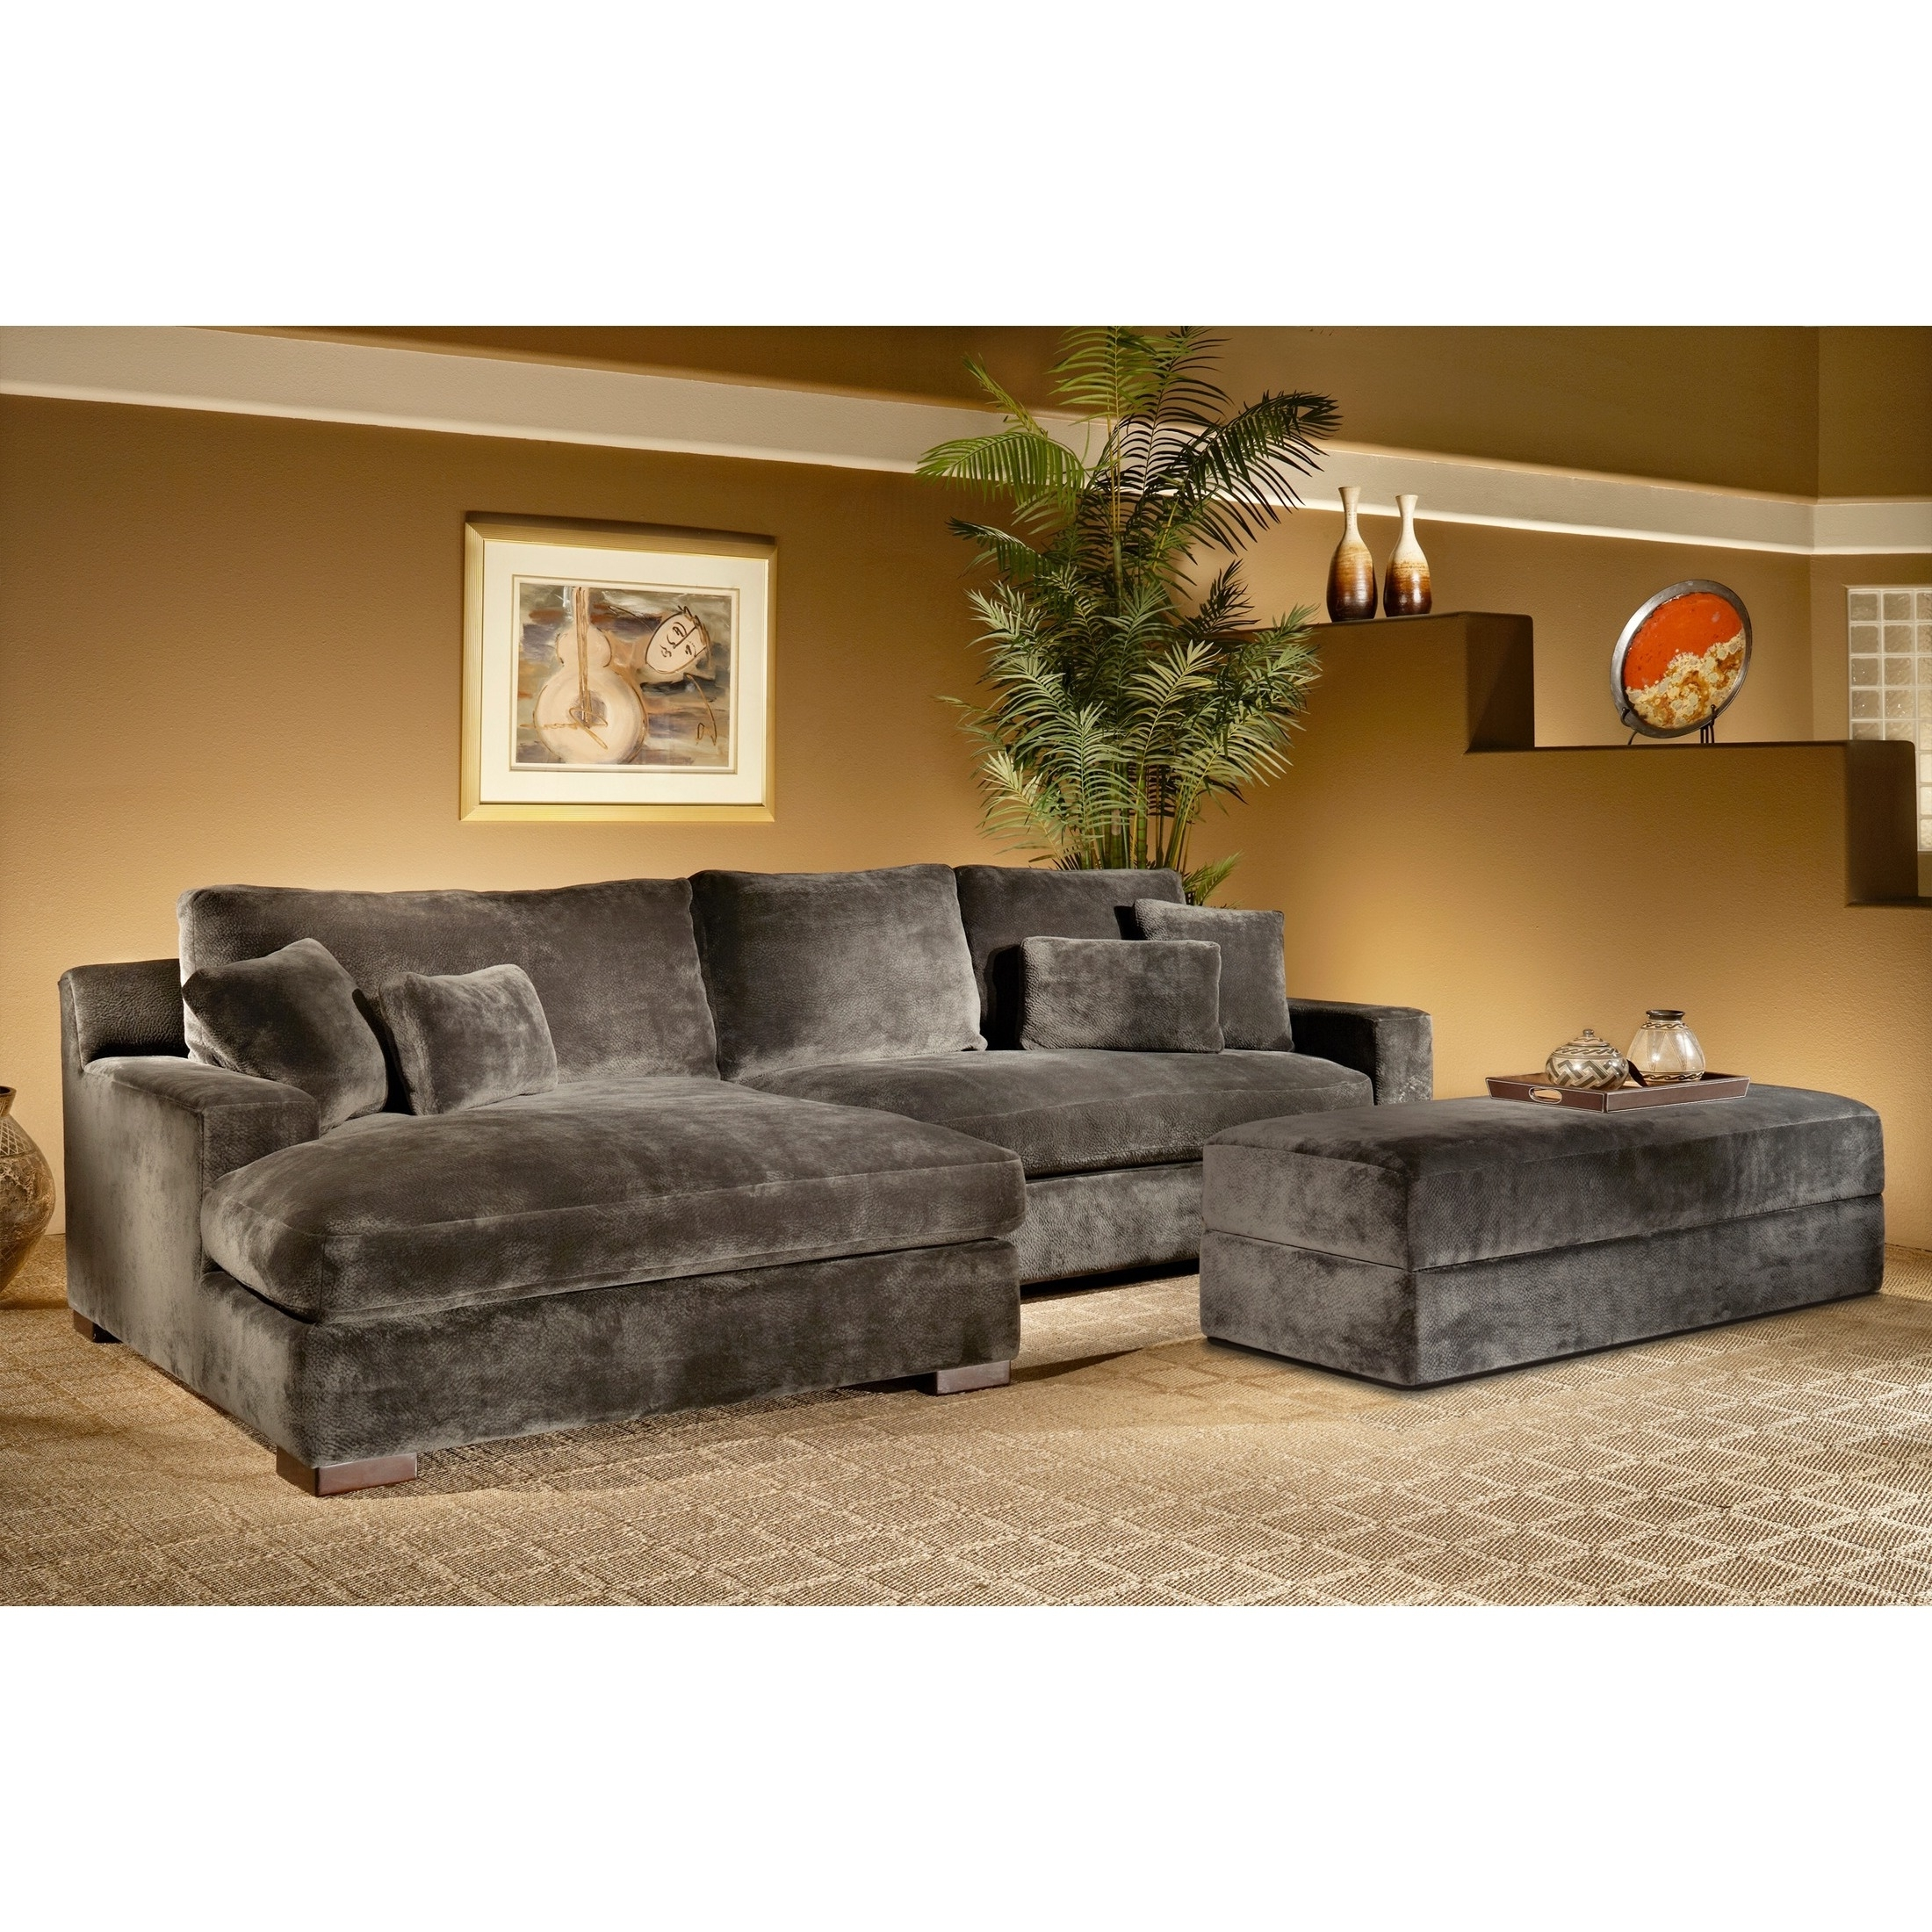 Jerome's Sectional Sofas Throughout Most Up To Date The Doris 3 Piece Smoke Sectional Sofa With Storage Ottoman Is (Gallery 14 of 20)